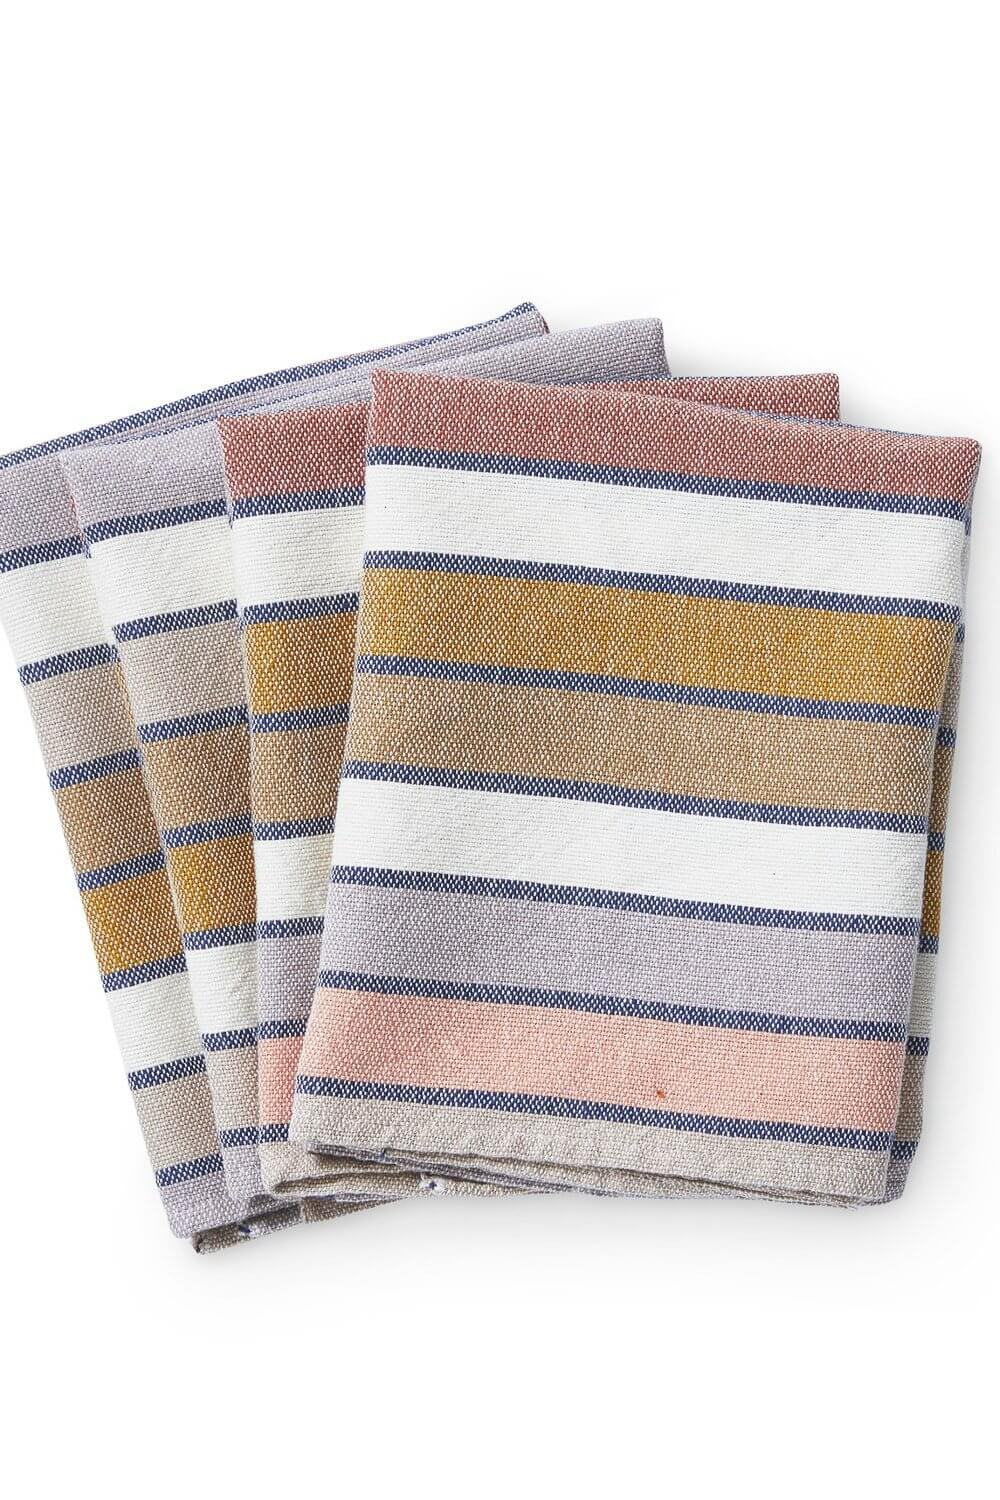 MINNA Sunrise Stripe Napkin Set